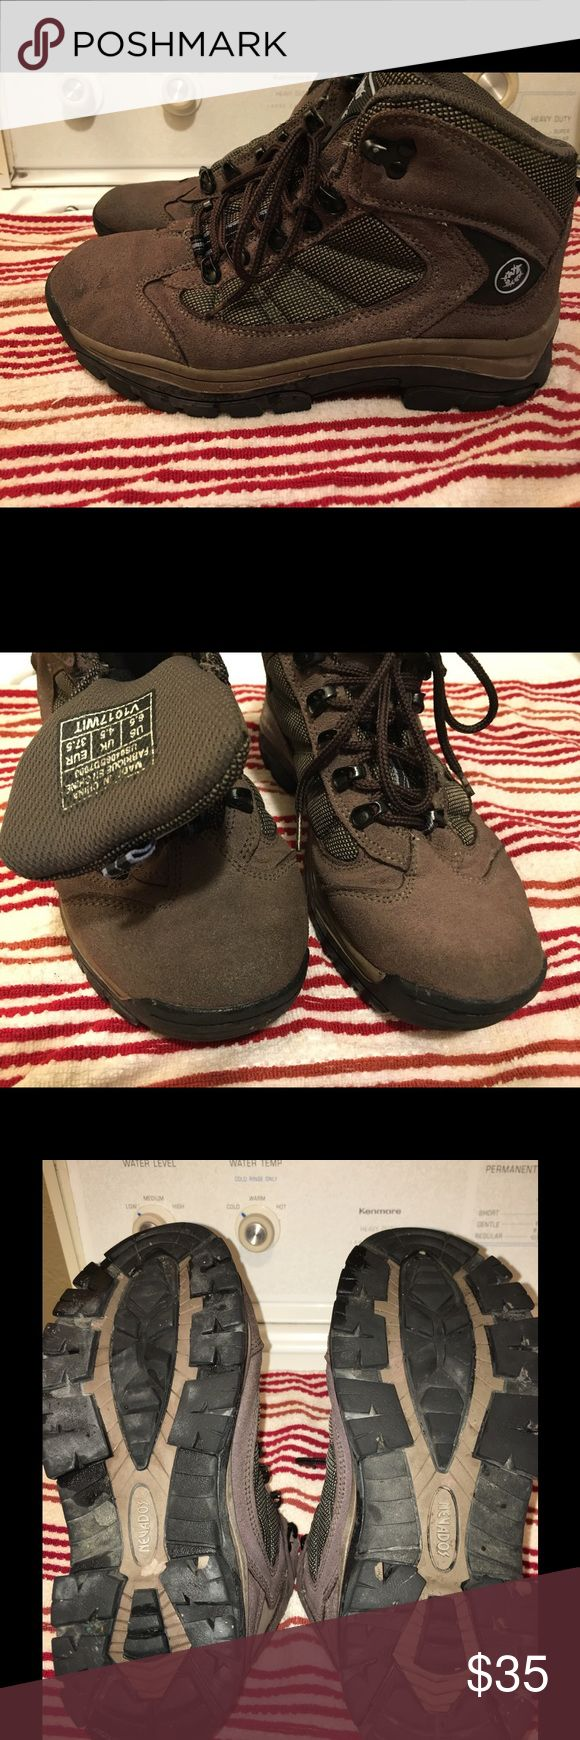 Hardly Used! Nevados Ladies Hiking Boots! So nice! I wore these for a couple of short hikes, then never hiked again; they've been sitting in my closet waiting for a new owner. VERY clean, great condition, the tread is all there (see pics). These boots will work and feel like new for you. One of the laces got lost when I pulled them out to inspect the shoes (I suspect cat involvement). If you buy, I'll throw a new pair of laces on for you. Make an offer, or bundle up to save! Nevados Shoes…